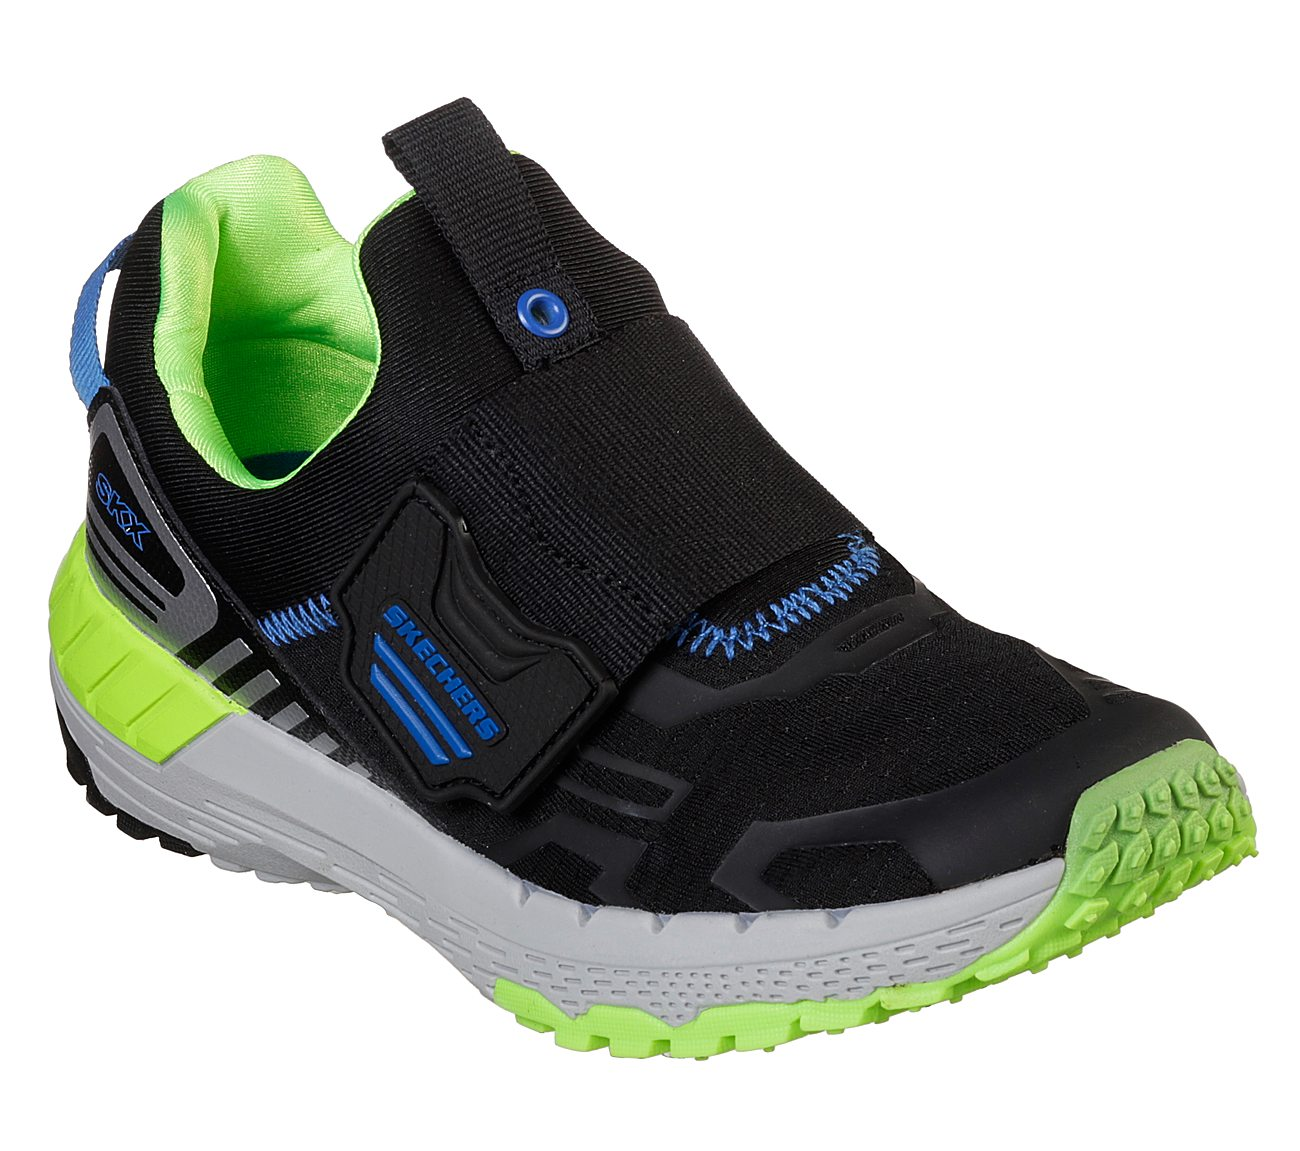 5431cd49dab1 Buy SKECHERS Hyperjolt 2.0 - Nitroblast Training Shoes Shoes only  47.00